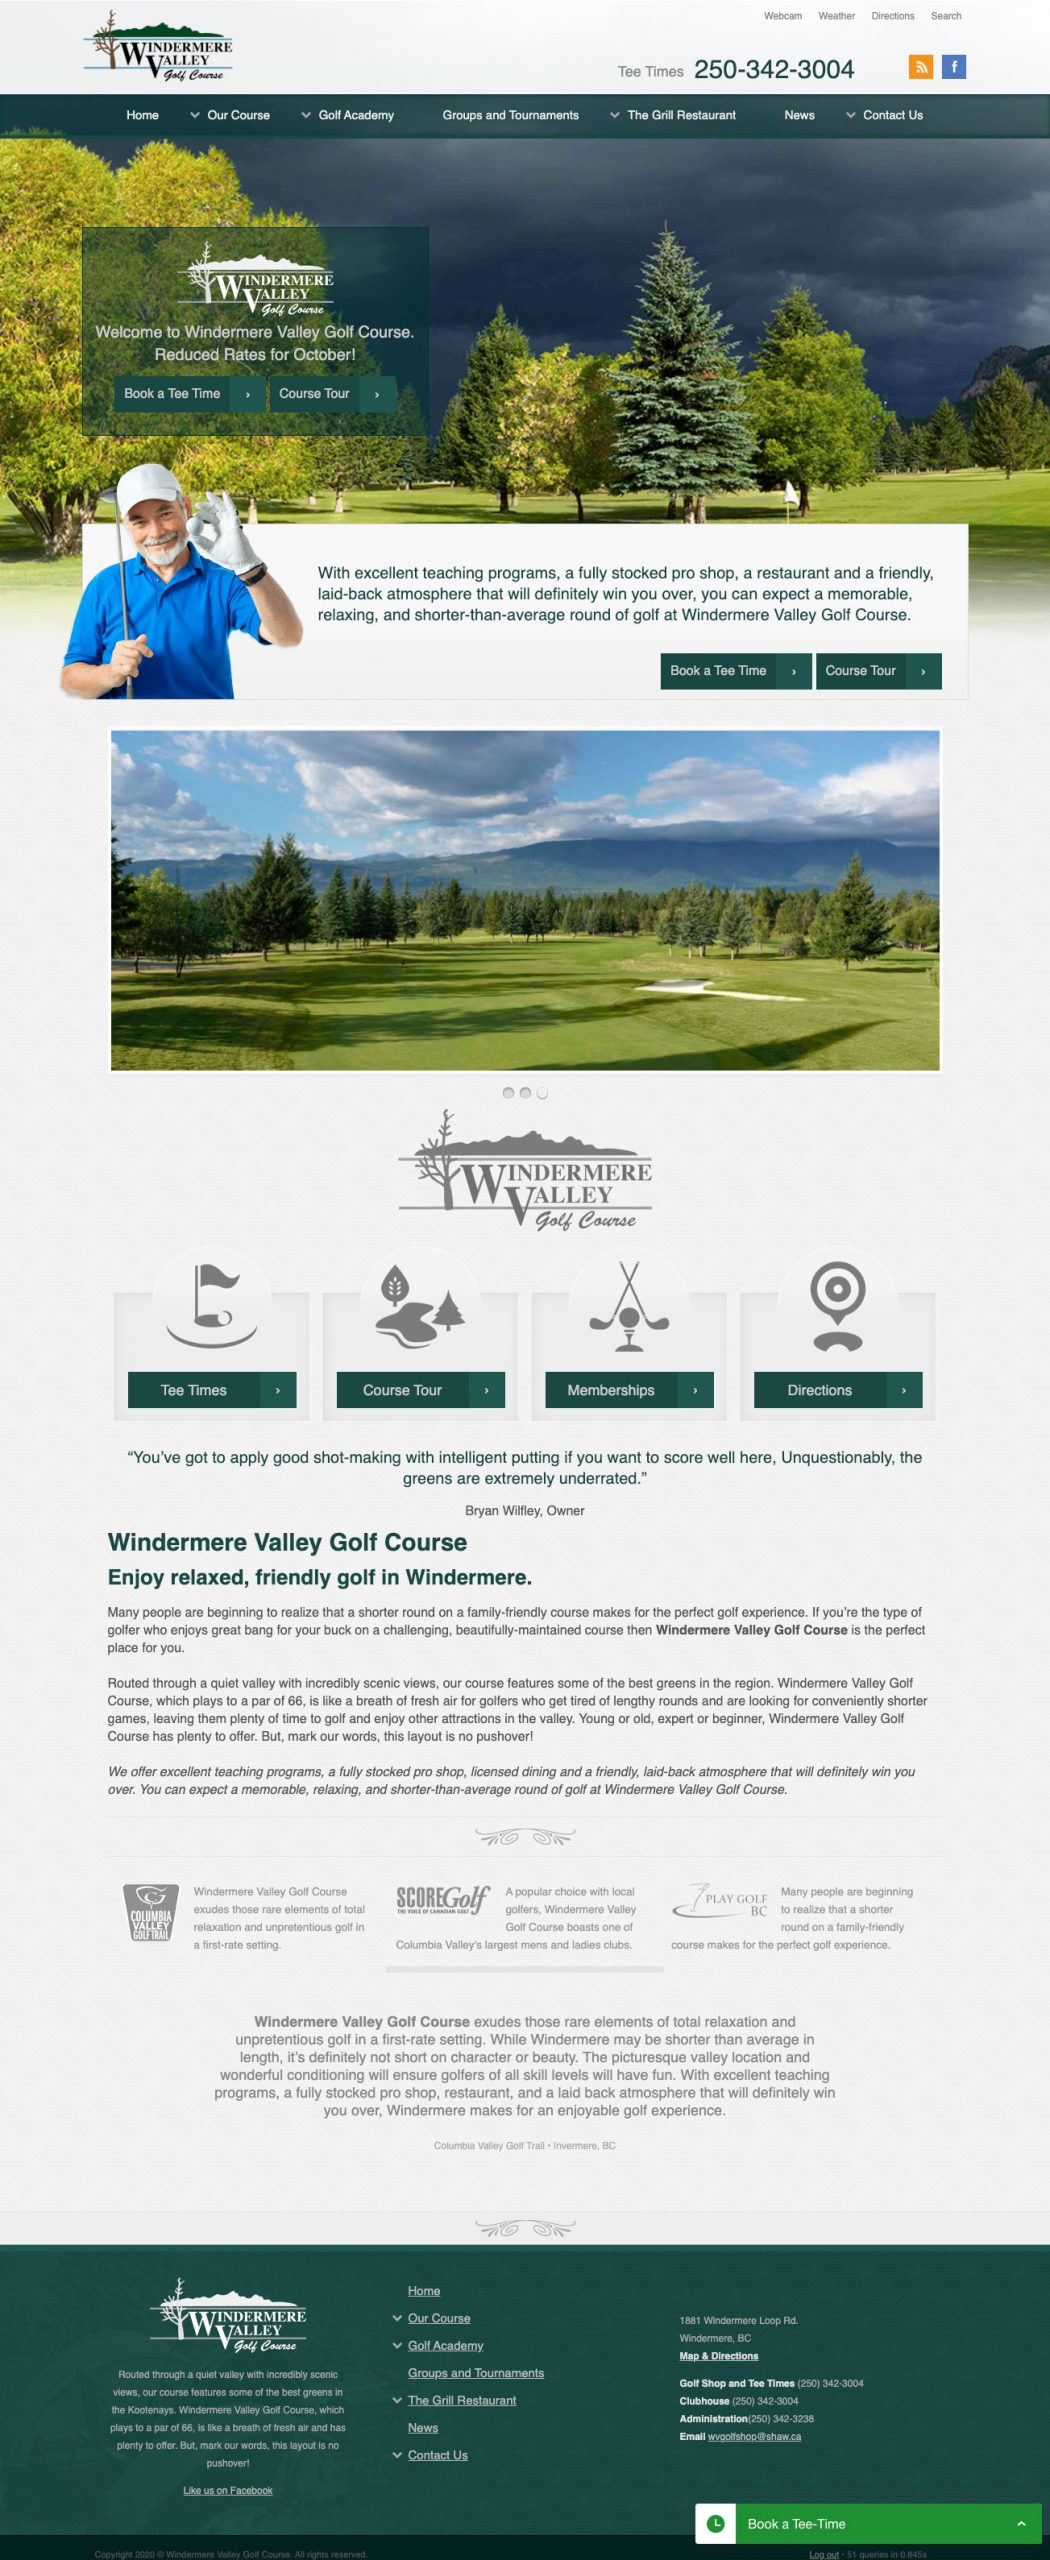 Windermere Valley Golf Course